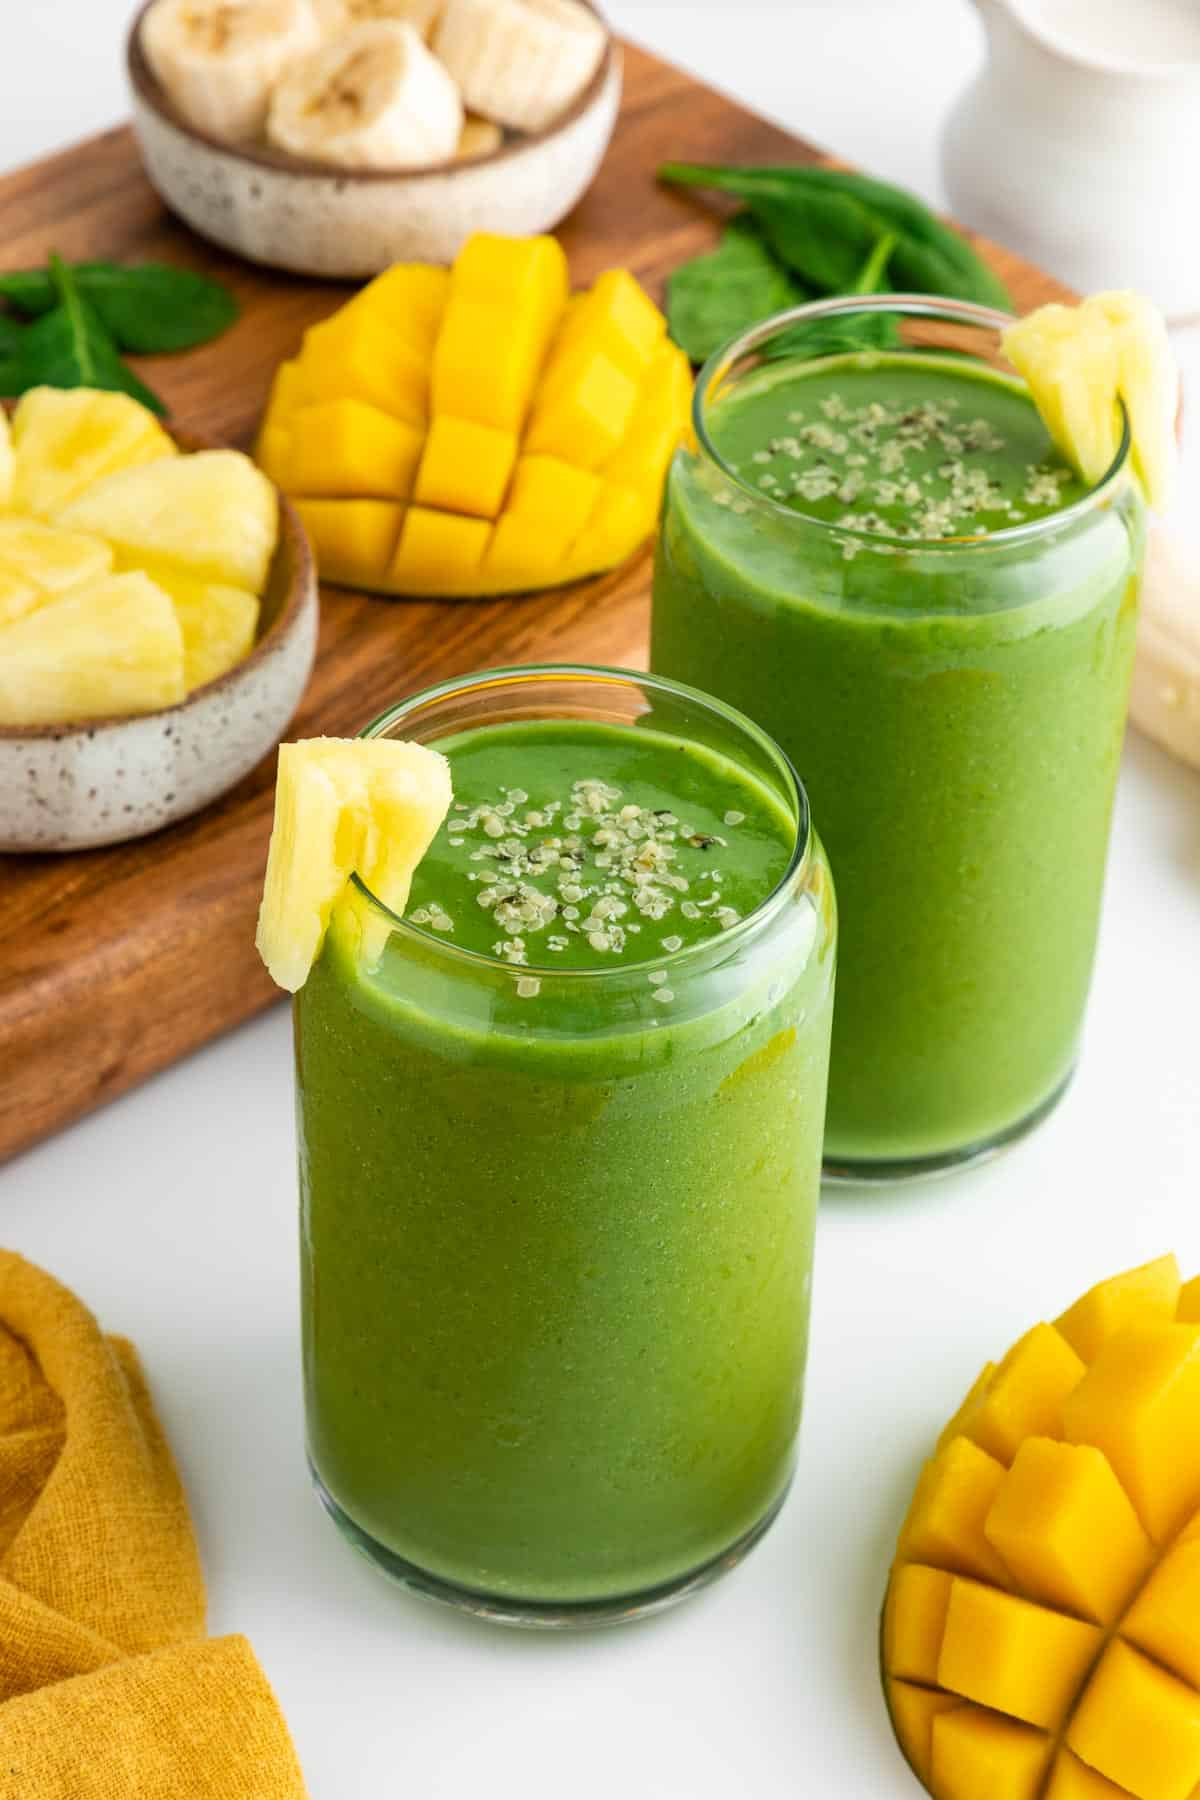 two glasses filled with a green smoothie surrounded by fresh mangoes, banana, pineapple chunks, and spinach